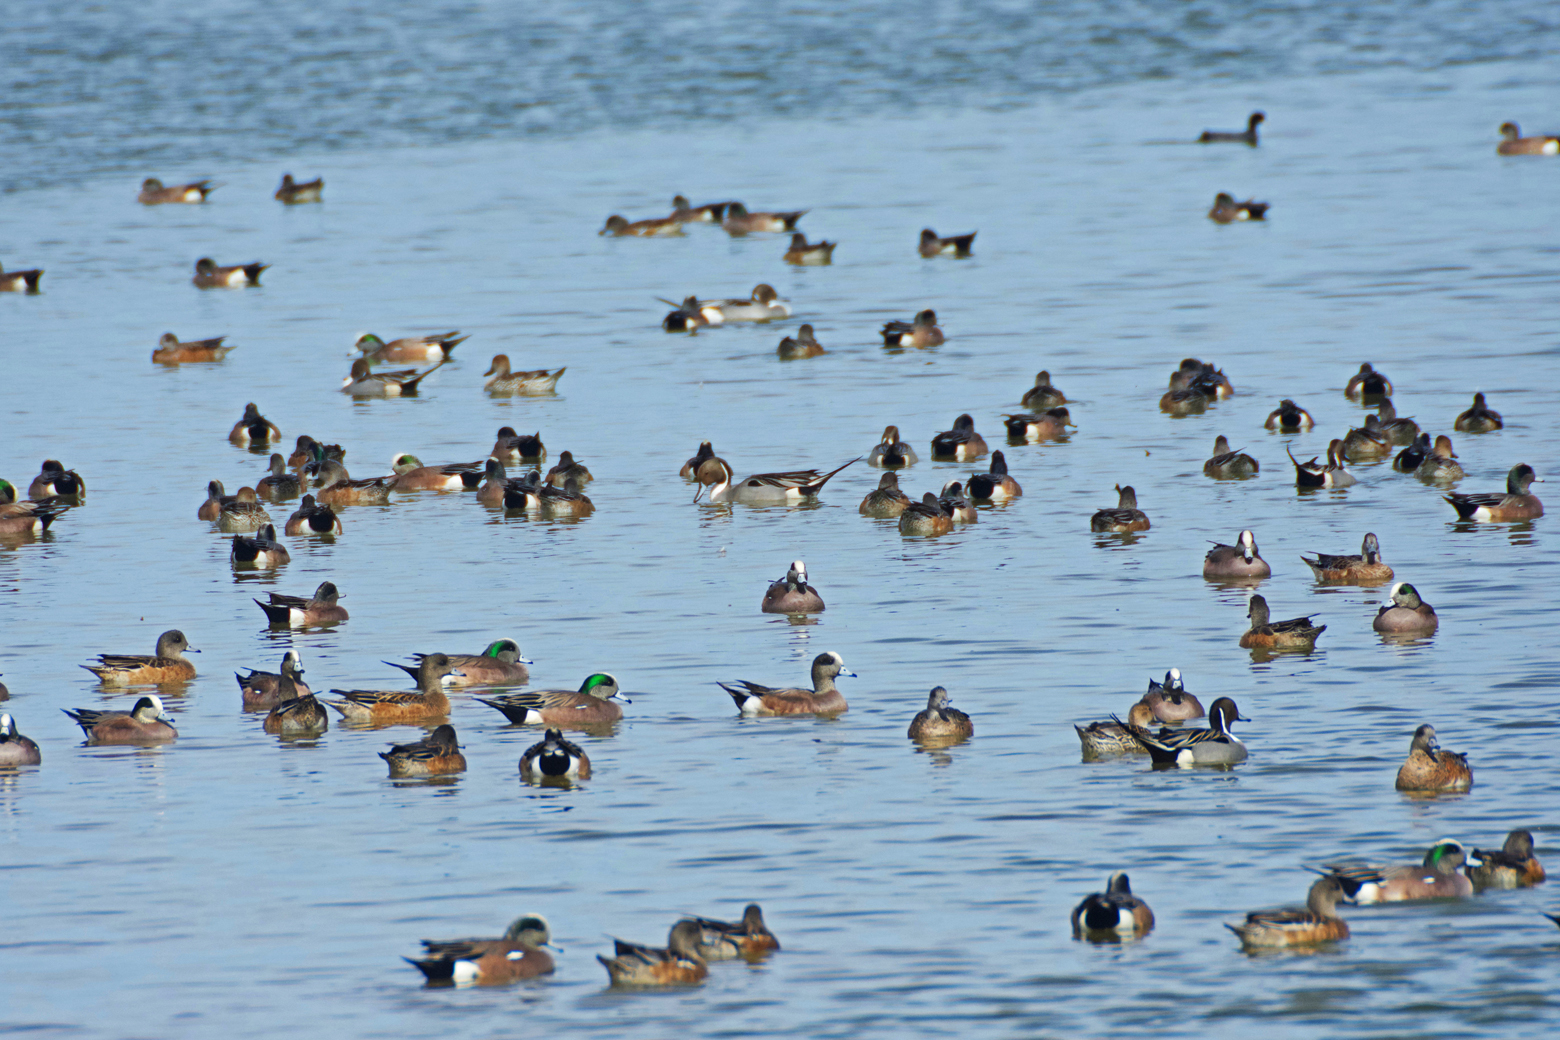 Male northern pintail surrounded by American wigeons and additional pintails in the main wetland at Cibola